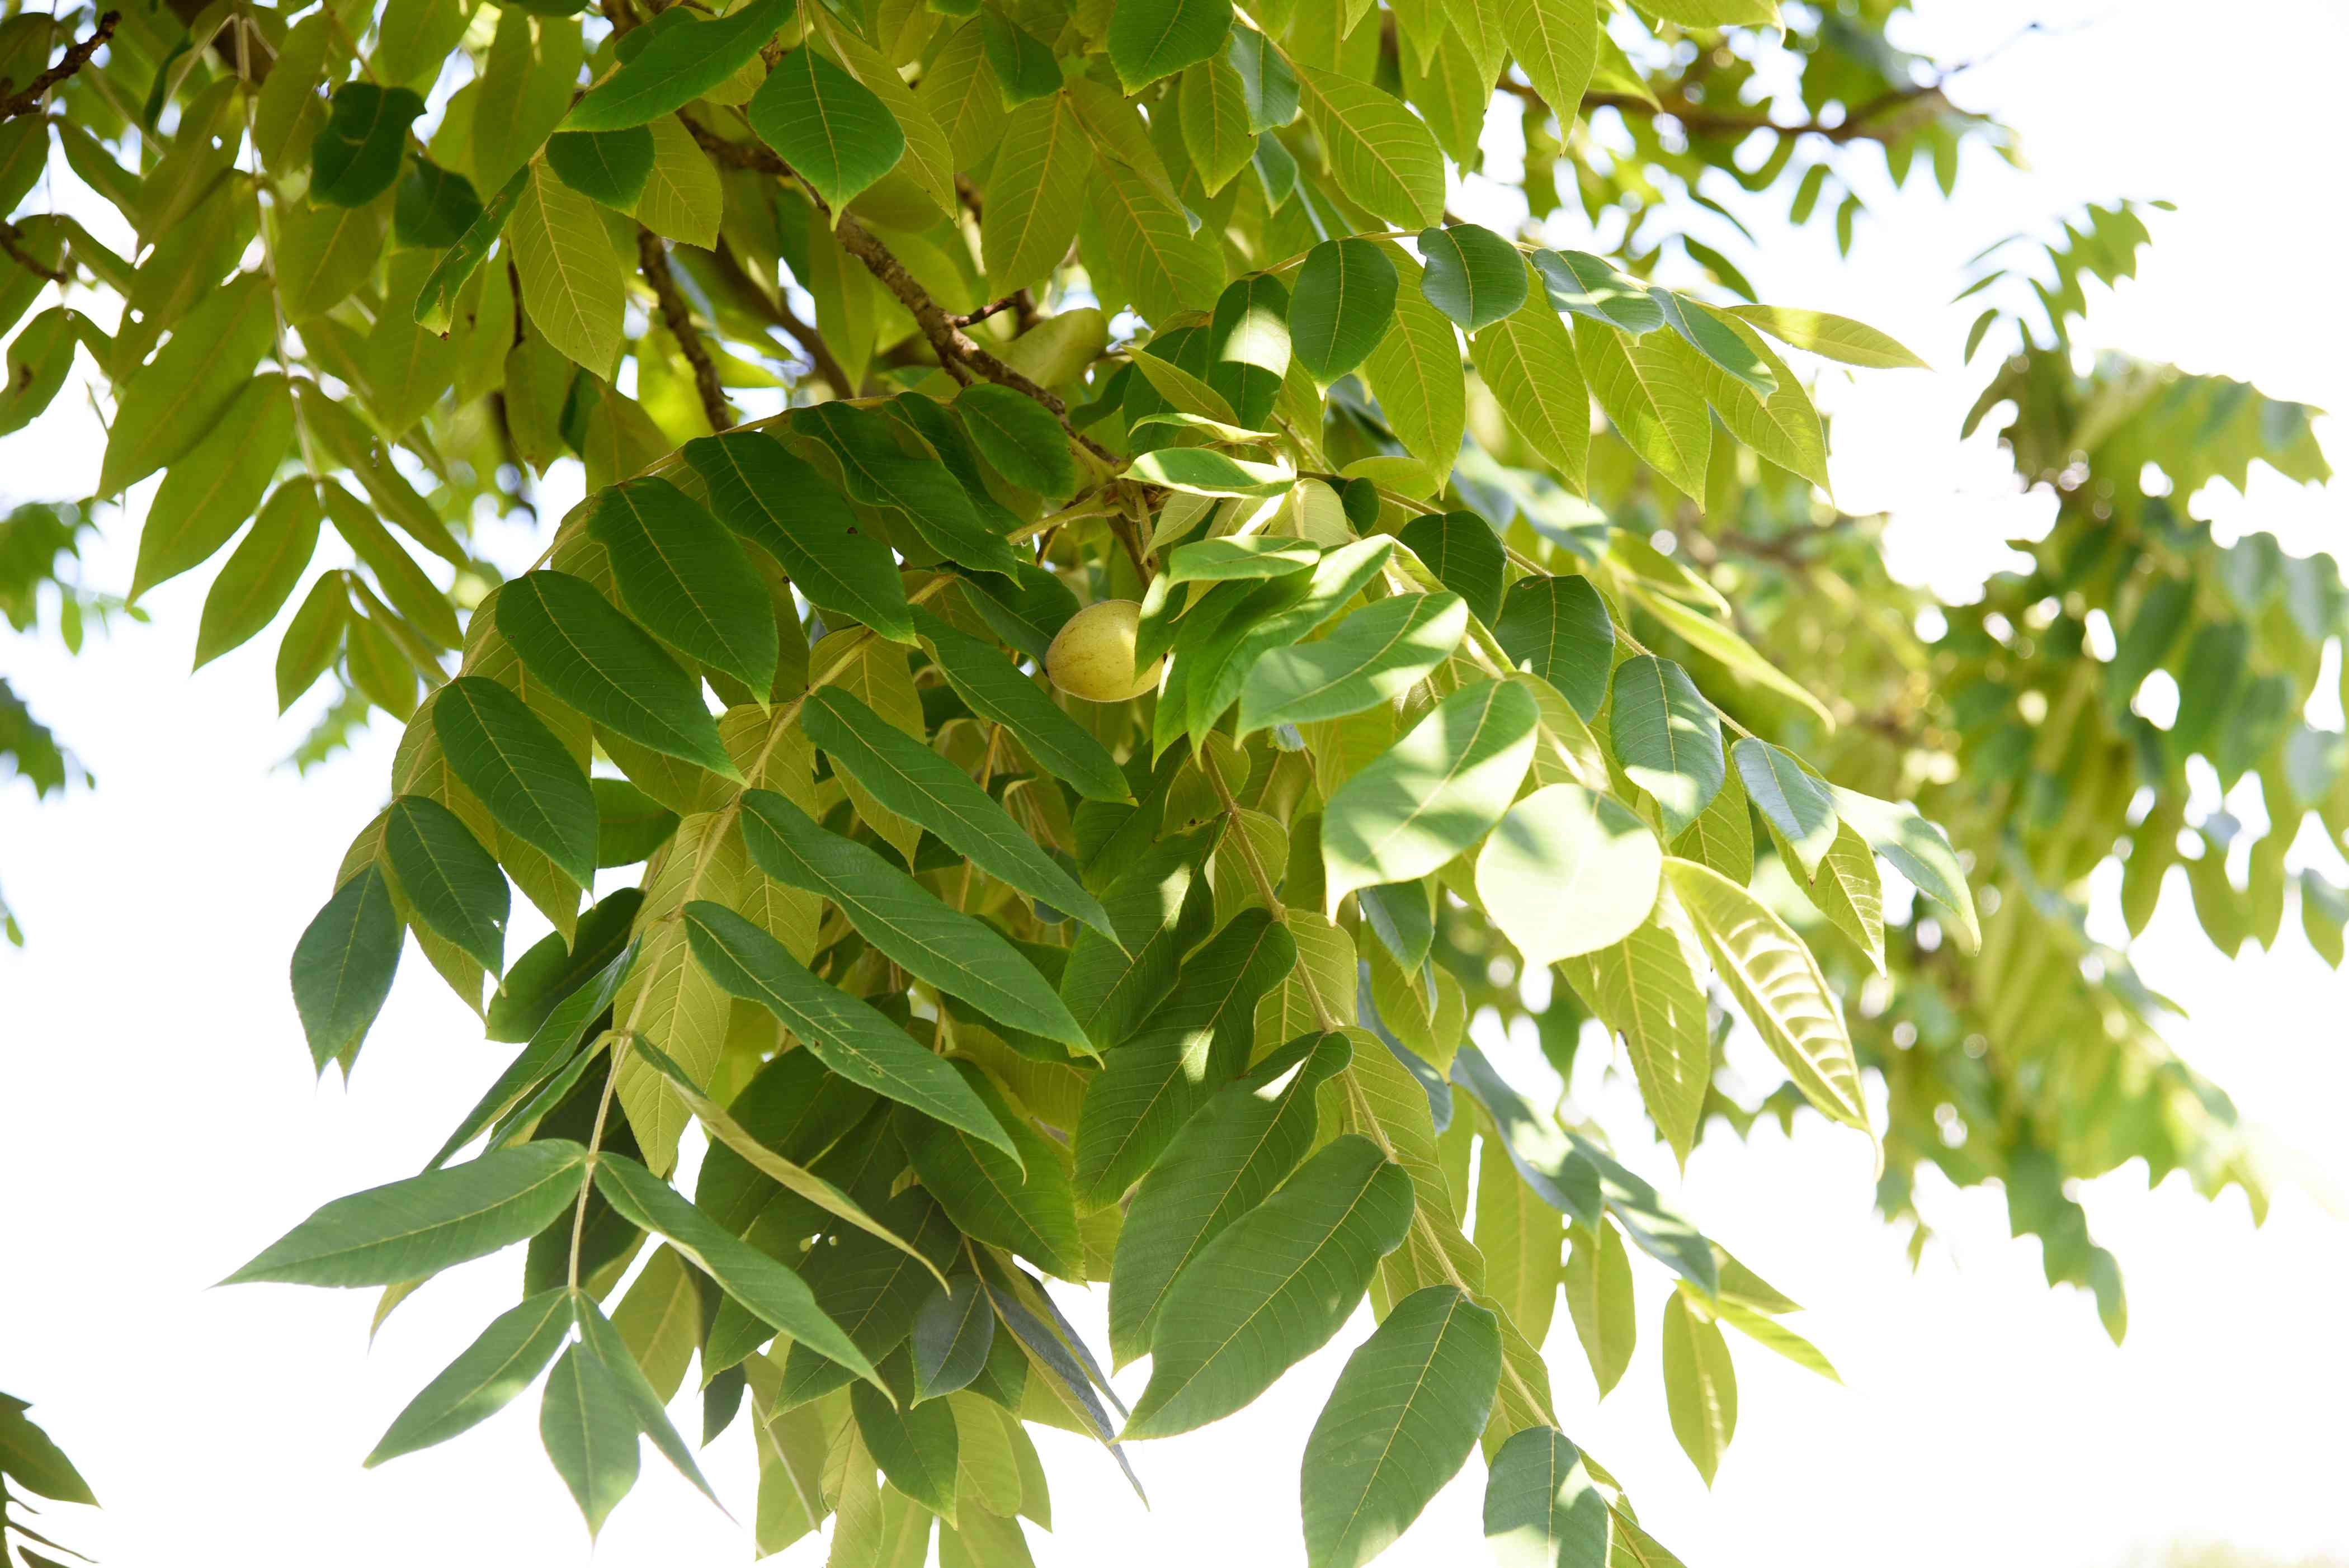 Butternut tree branch with oval light and bright green leaves with nut in the middle